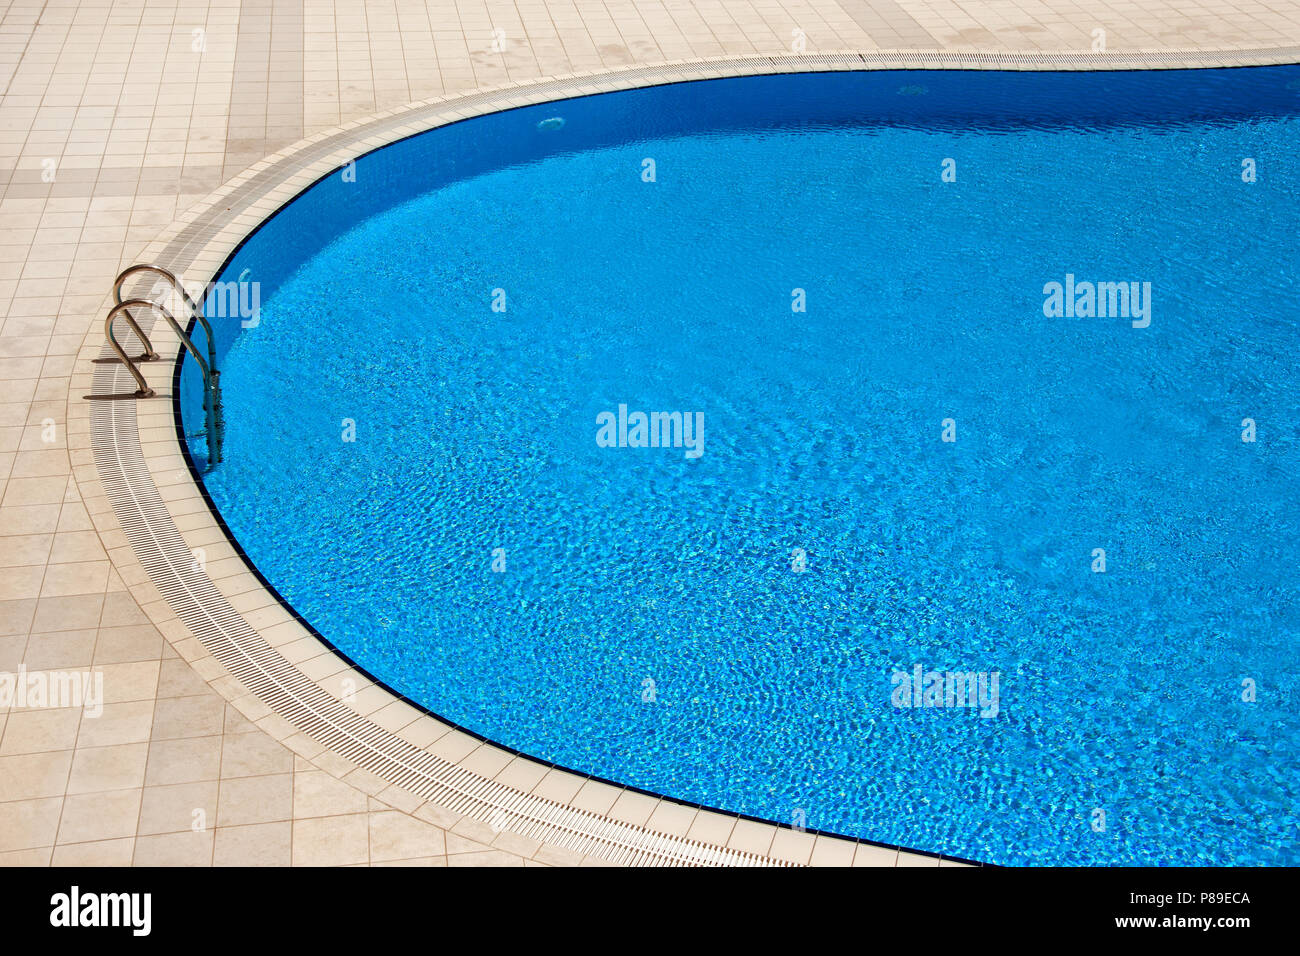 an image of swimming pool - Stock Image